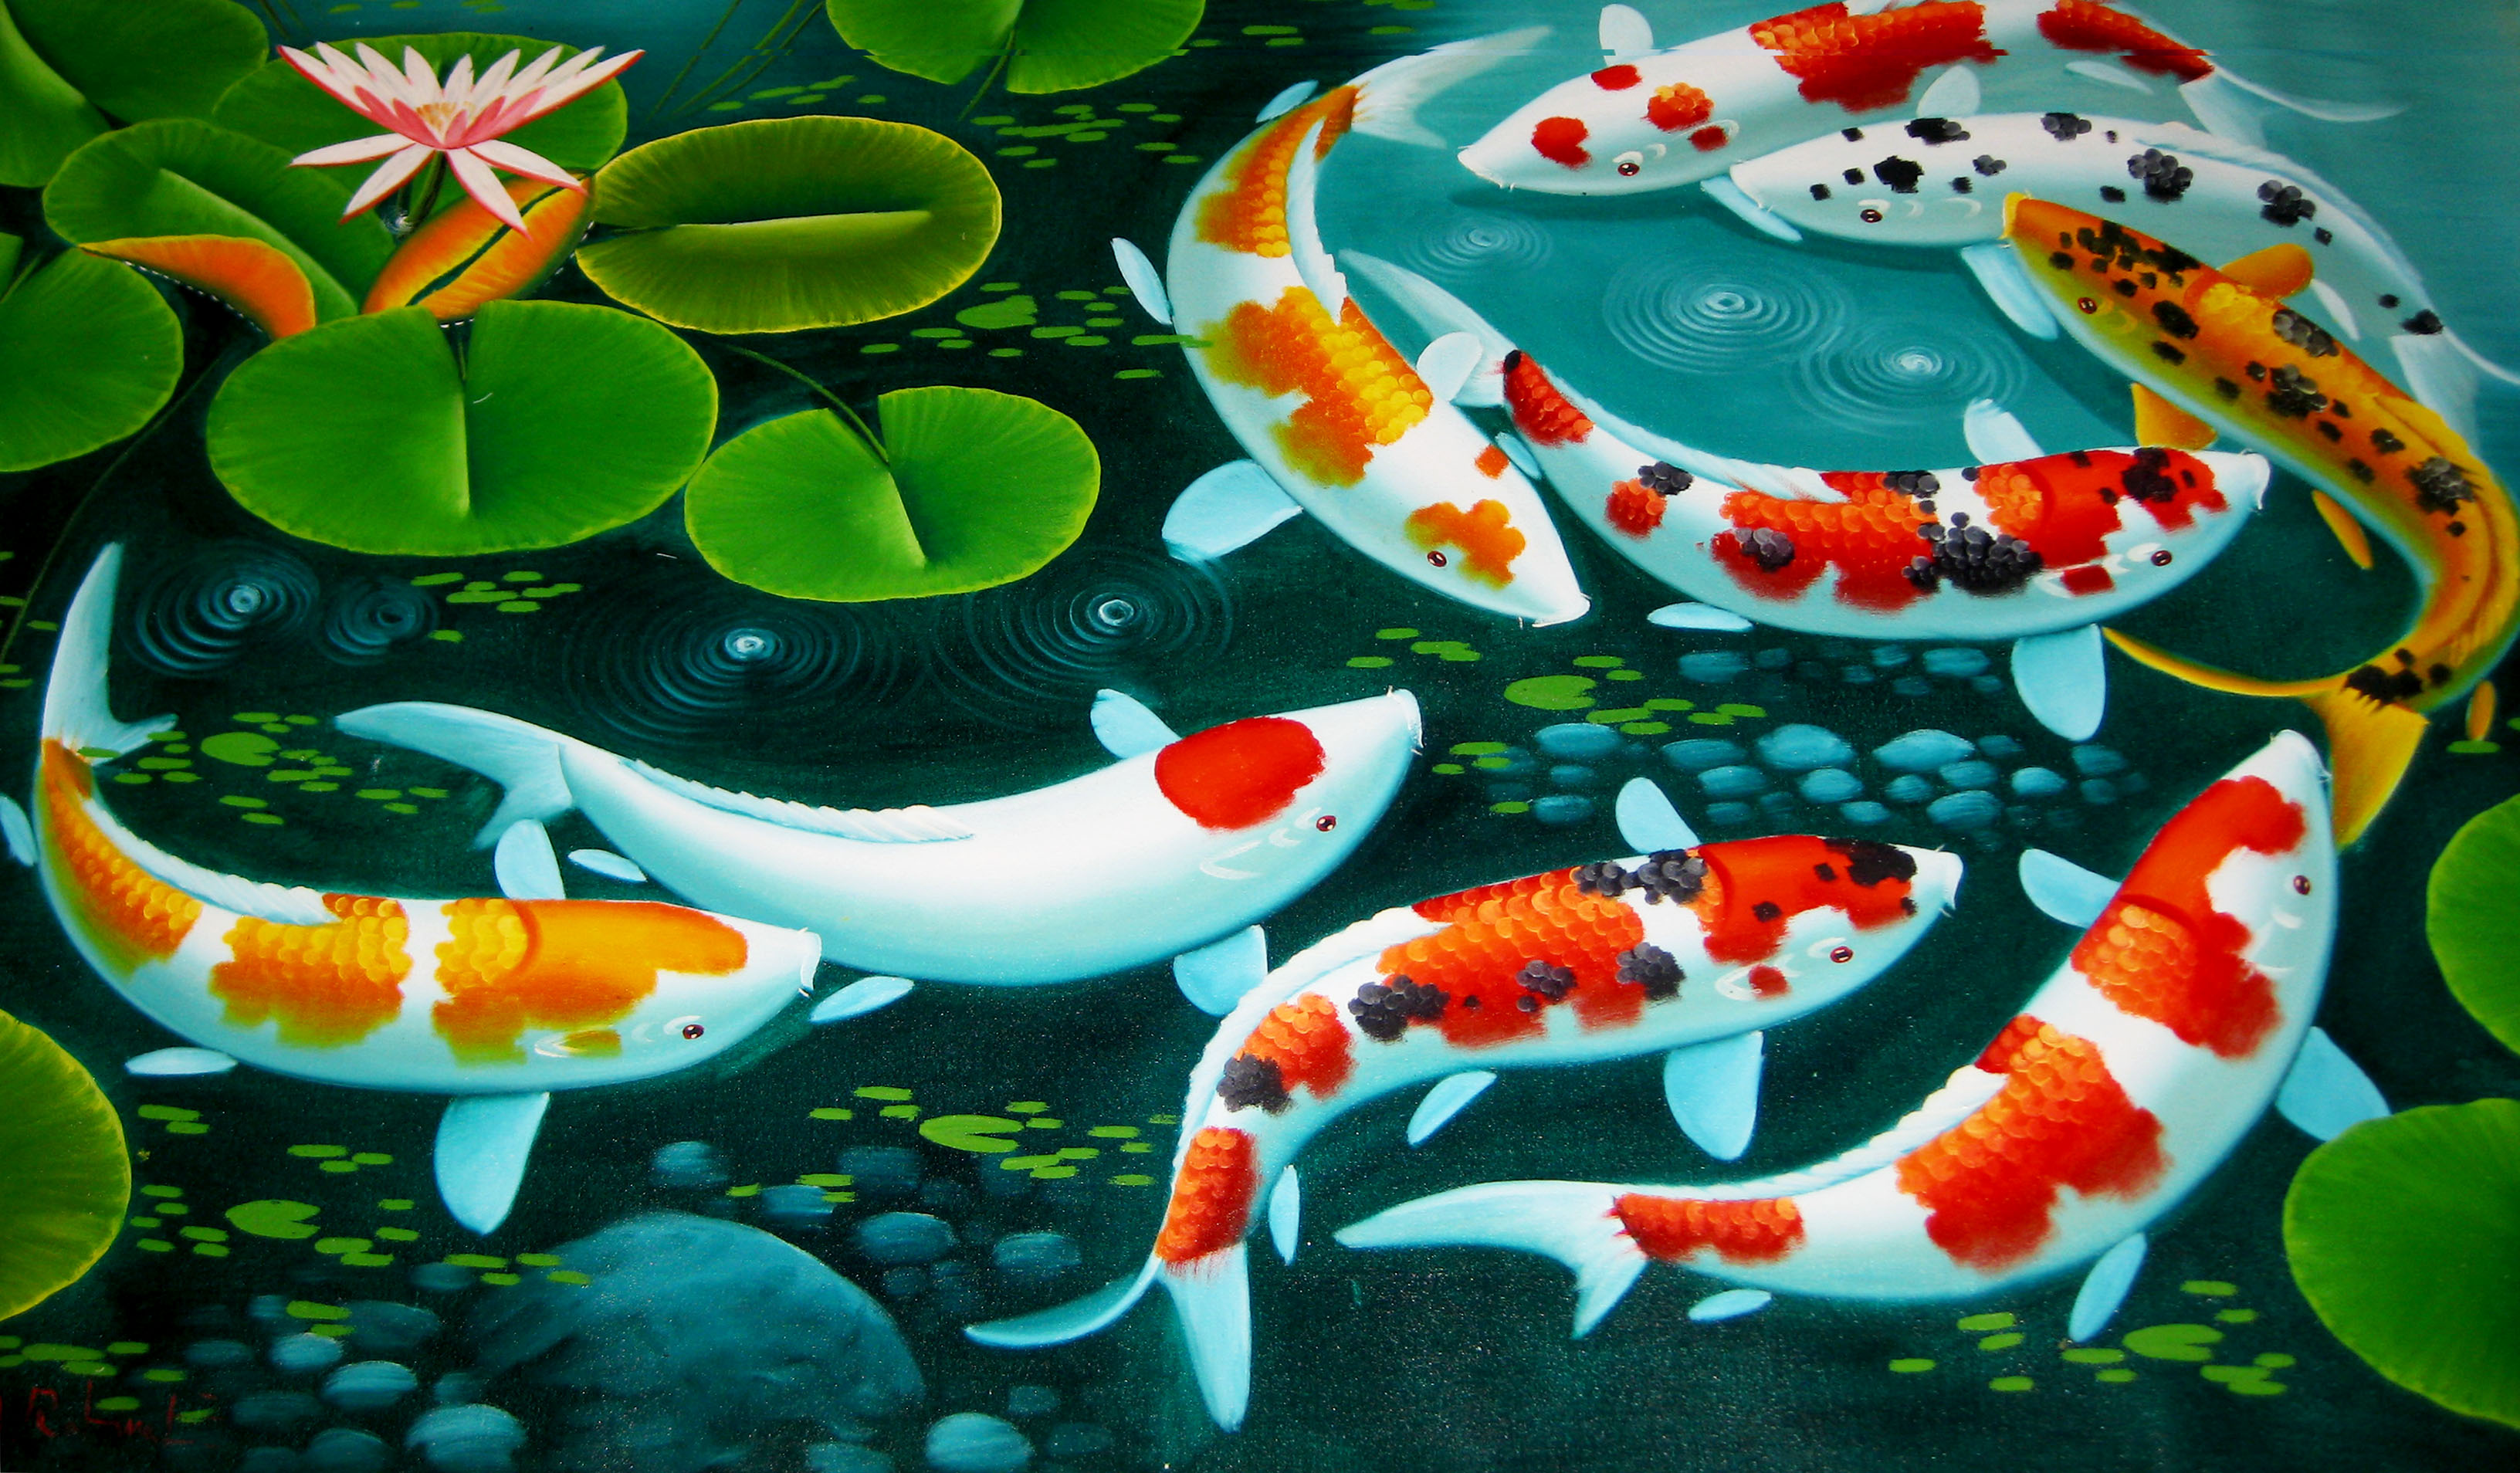 Koi pond wallpaper wallpapersafari for Koi goldfisch